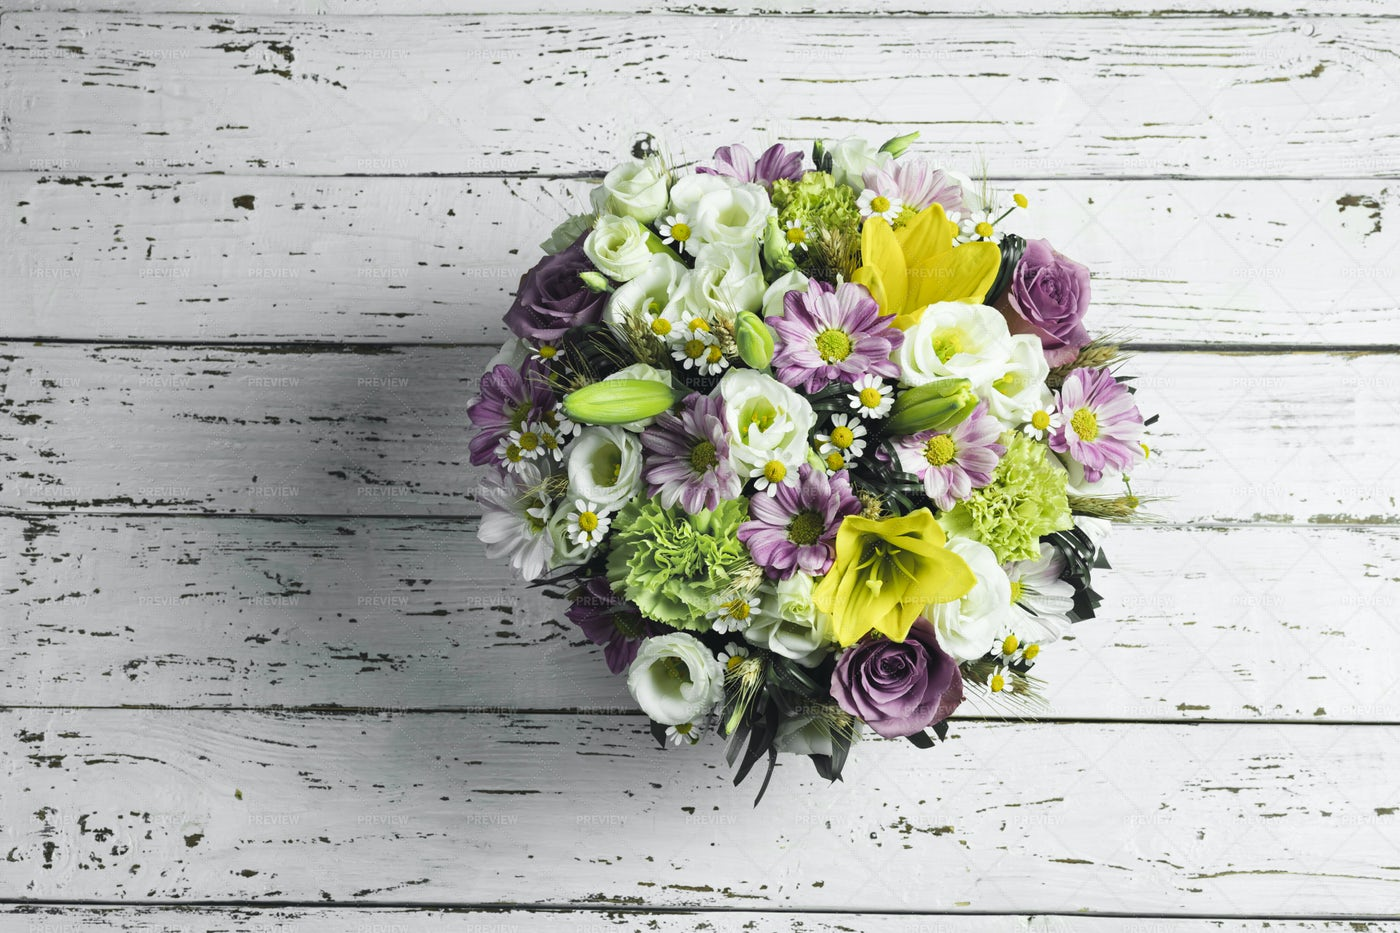 Flower Bouquet On Wooden Table: Stock Photos